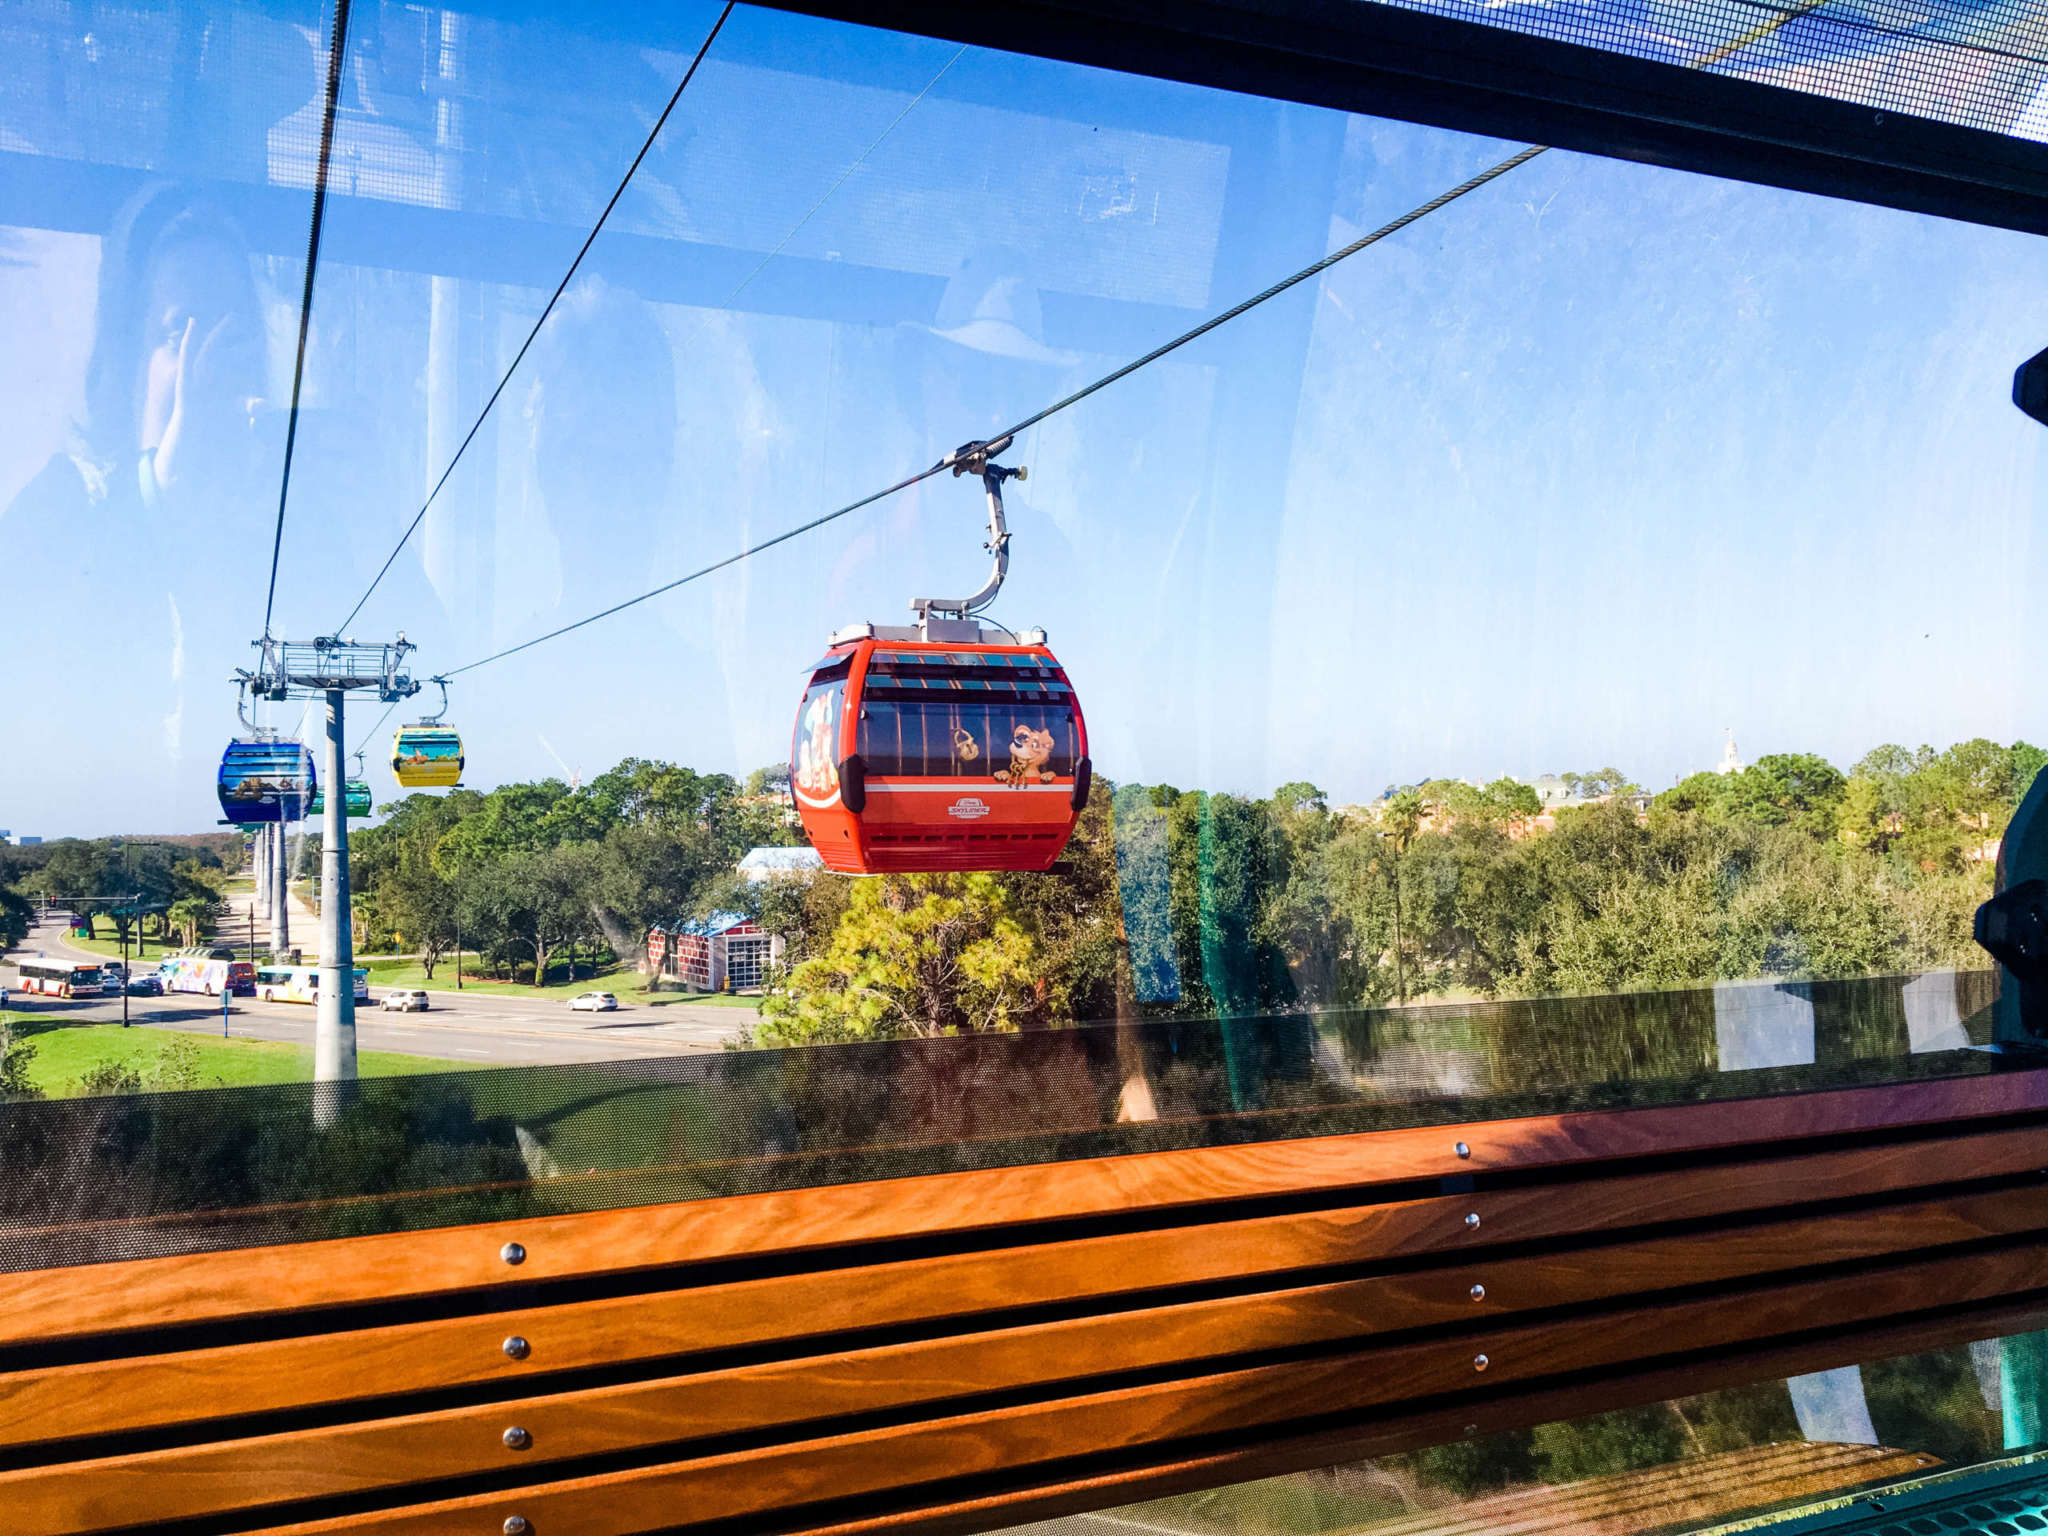 A view from a gondola car